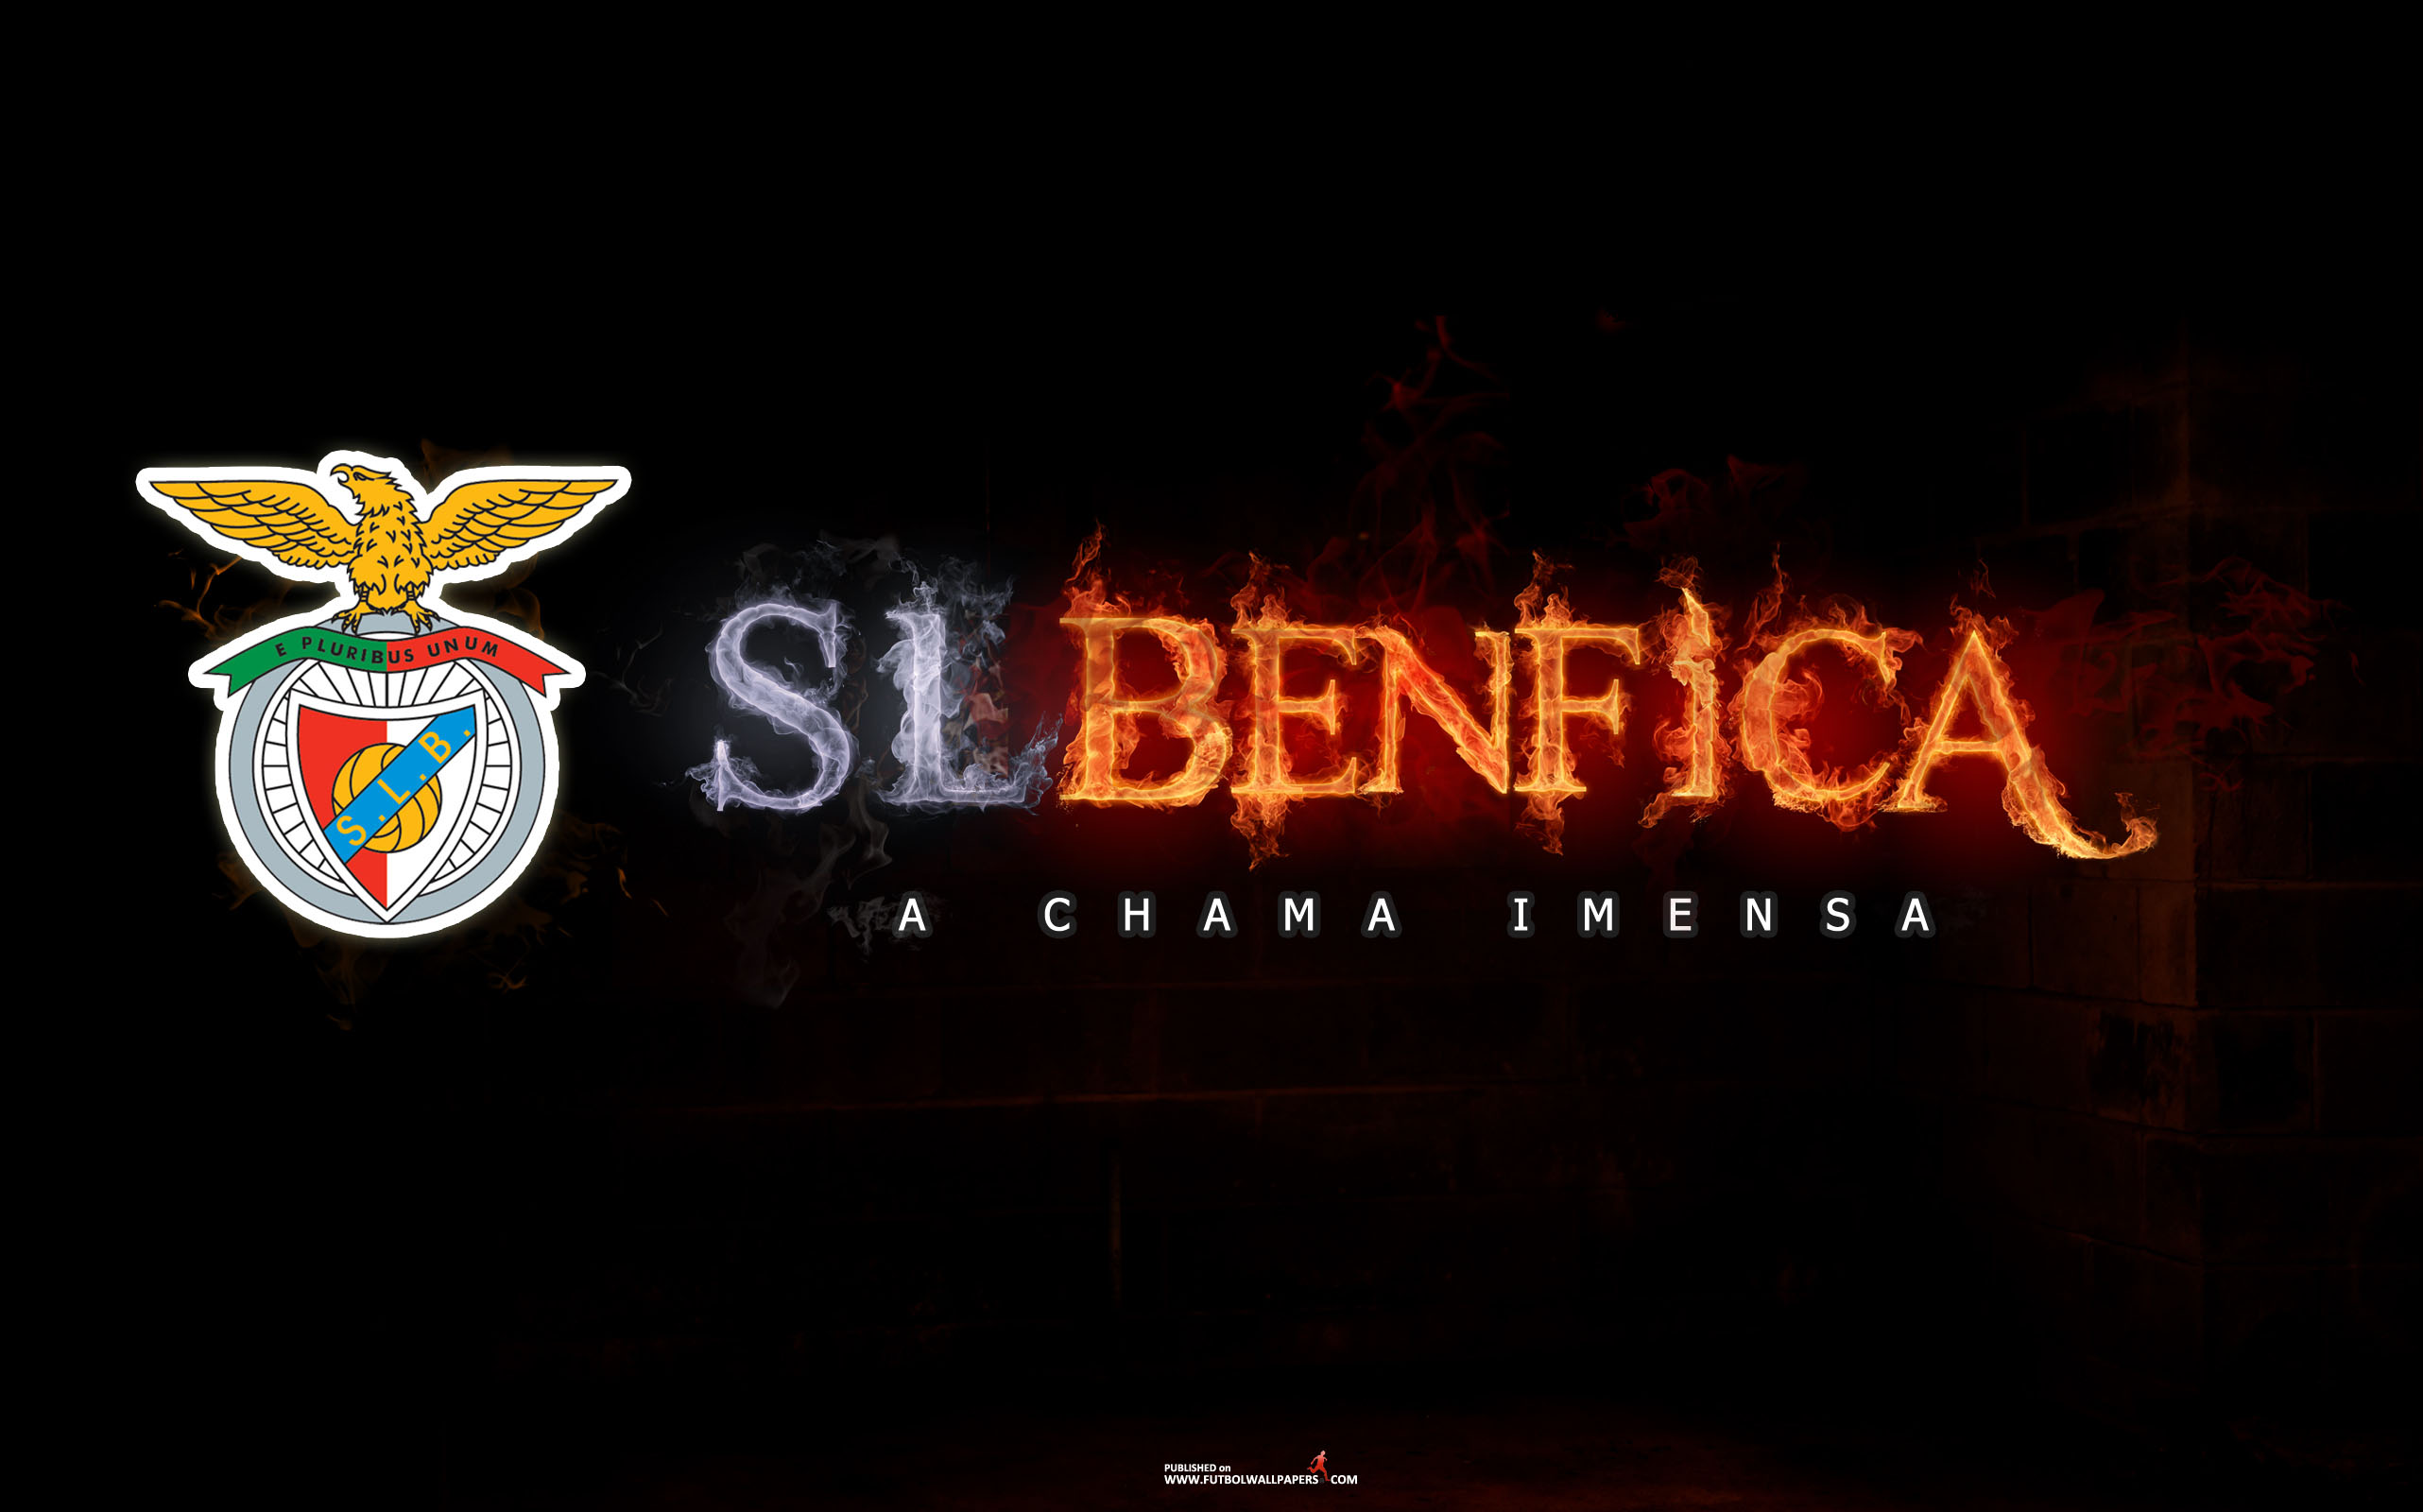 2564x1600 - S.L. Benfica Wallpapers 6